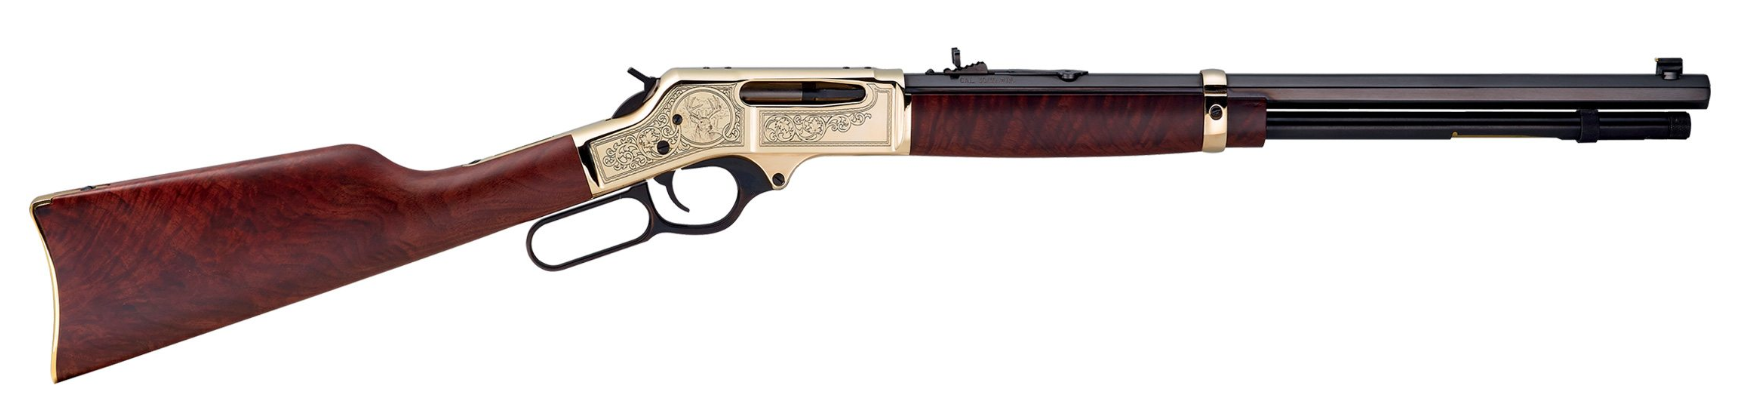 Henry Brass Wildlife Edition Lever-Action Rifle - 30-30 Win 20